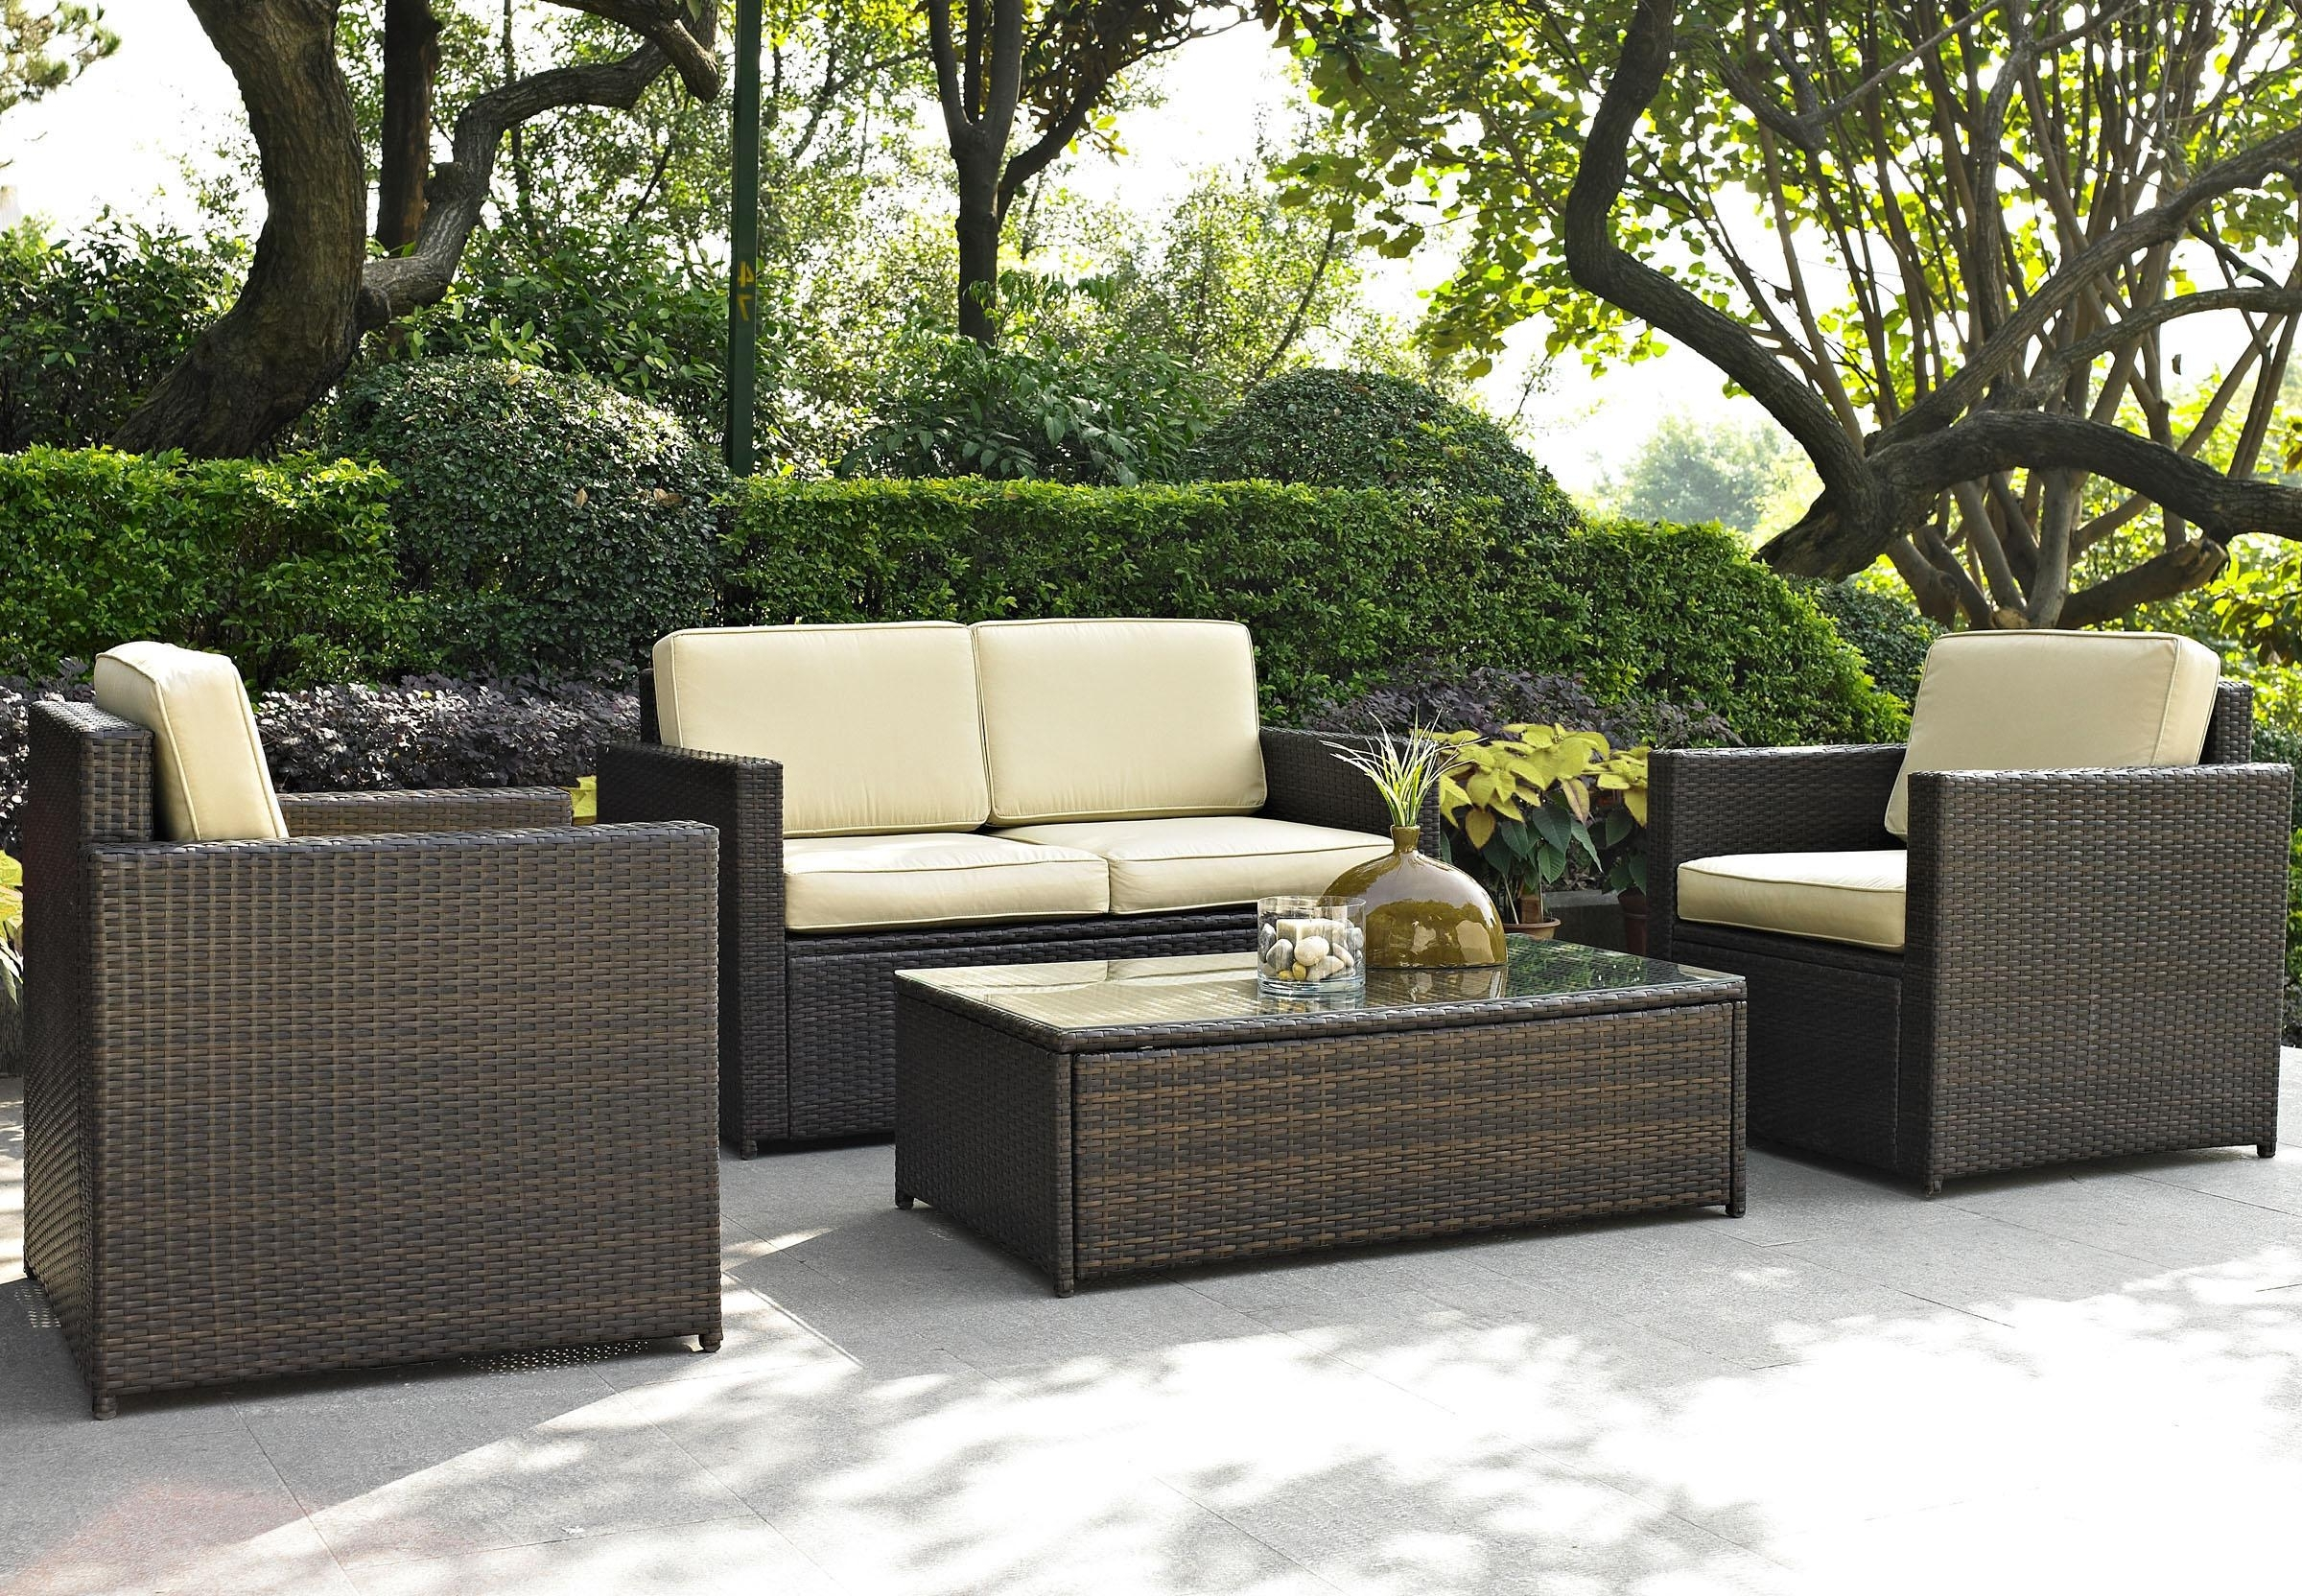 Garden & Patio Furniture : Patio Rocking Chairs Patio Gravity Chair In Well Known Patio Conversation Sets With Ottomans (View 15 of 20)